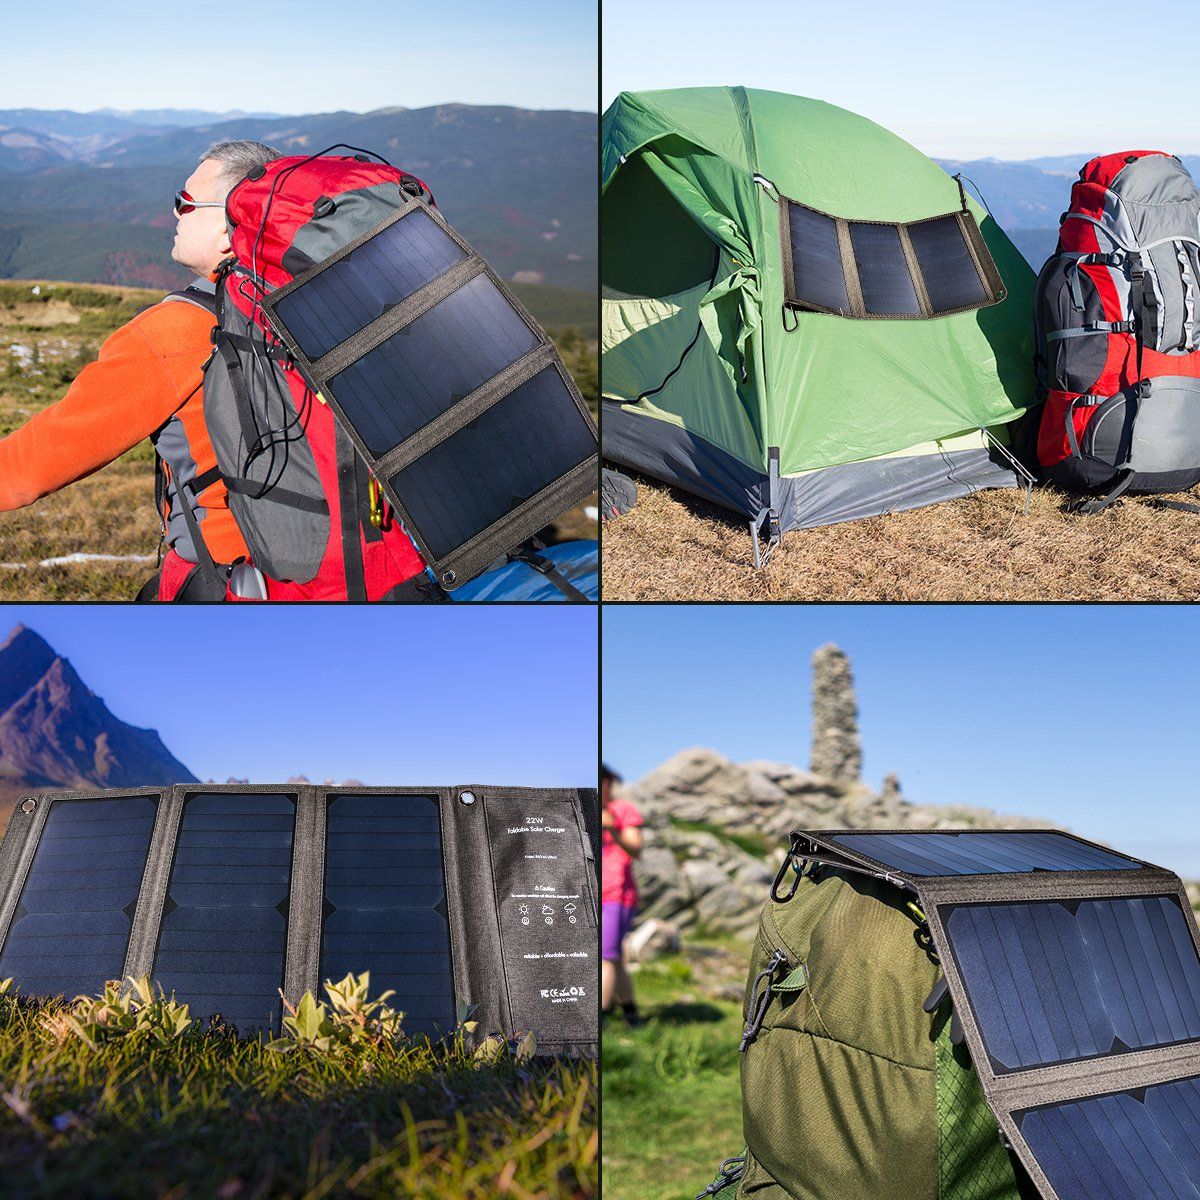 c41c845fd0ad Details about 22W Lightweight Foldable Solar Panel Power USB Port Battery  Charger Camping SU82